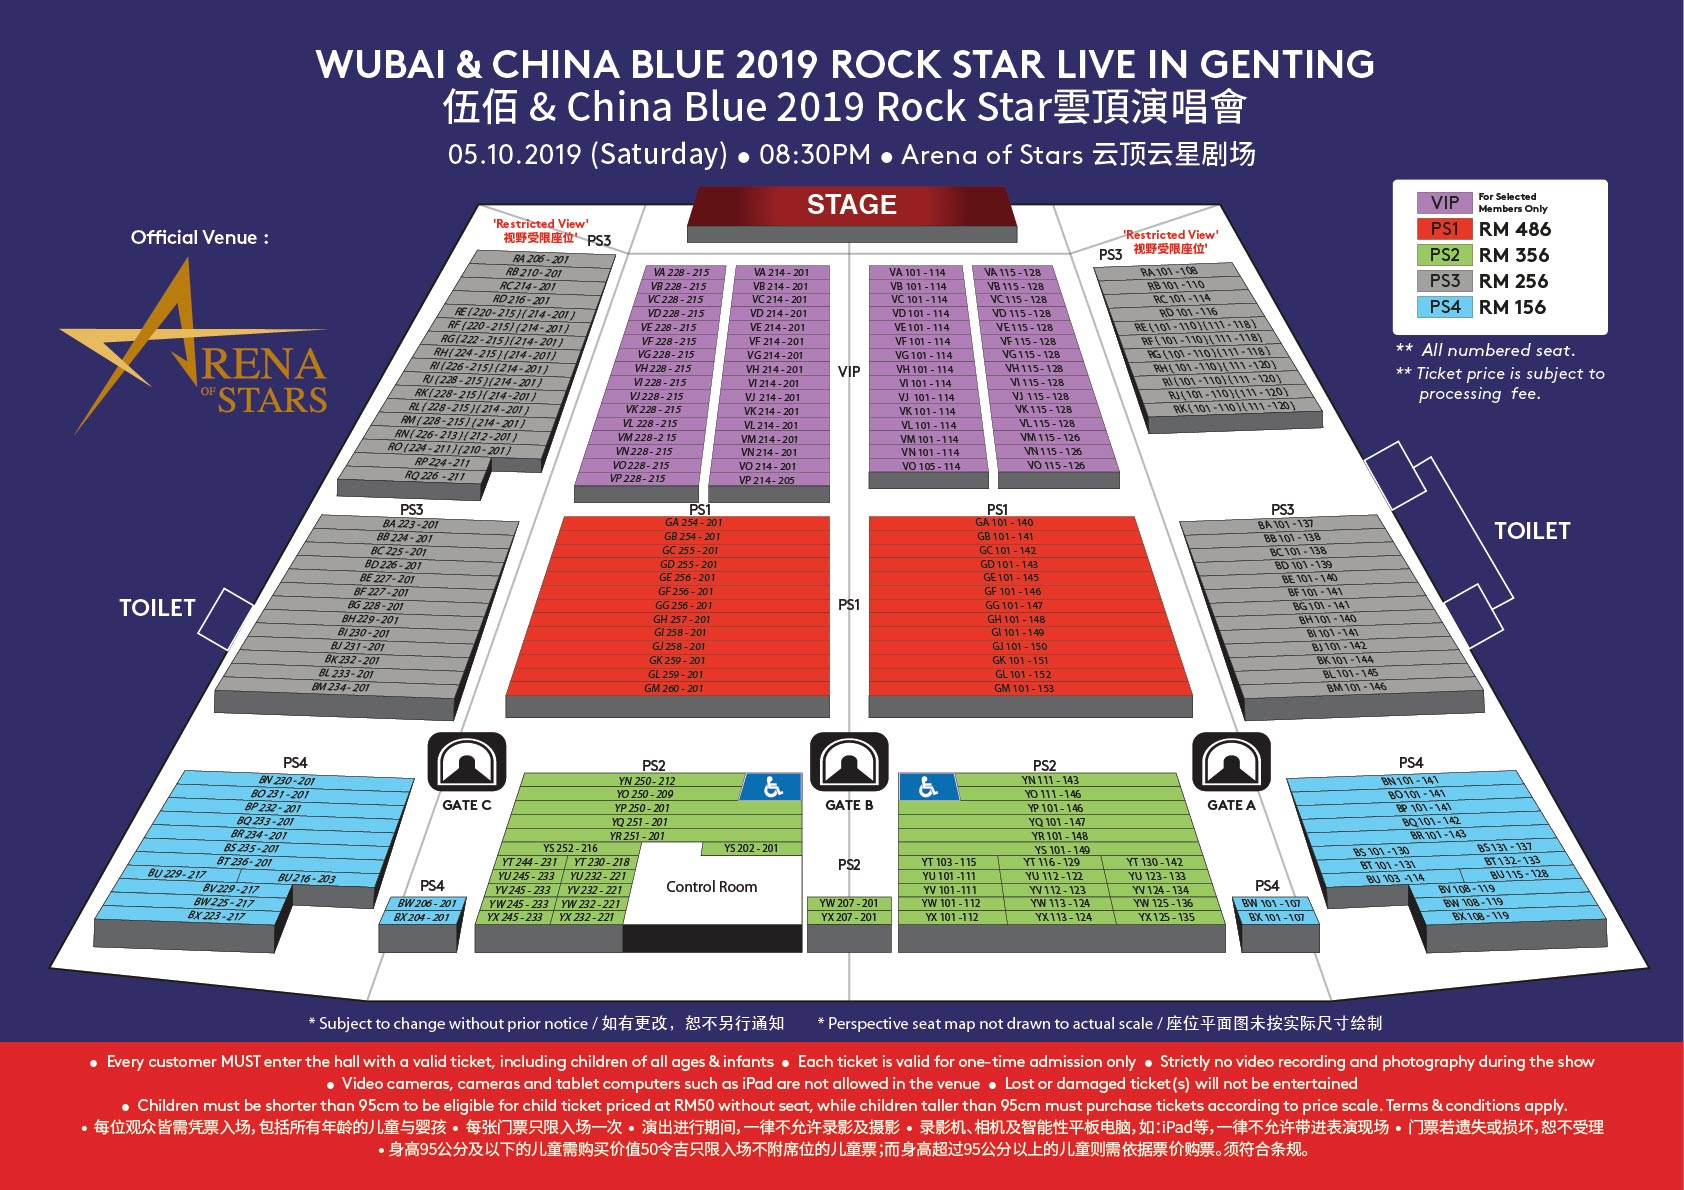 WUBAI & CHINA BLUE 2019 ROCK STAR LIVE IN GENTING | Official